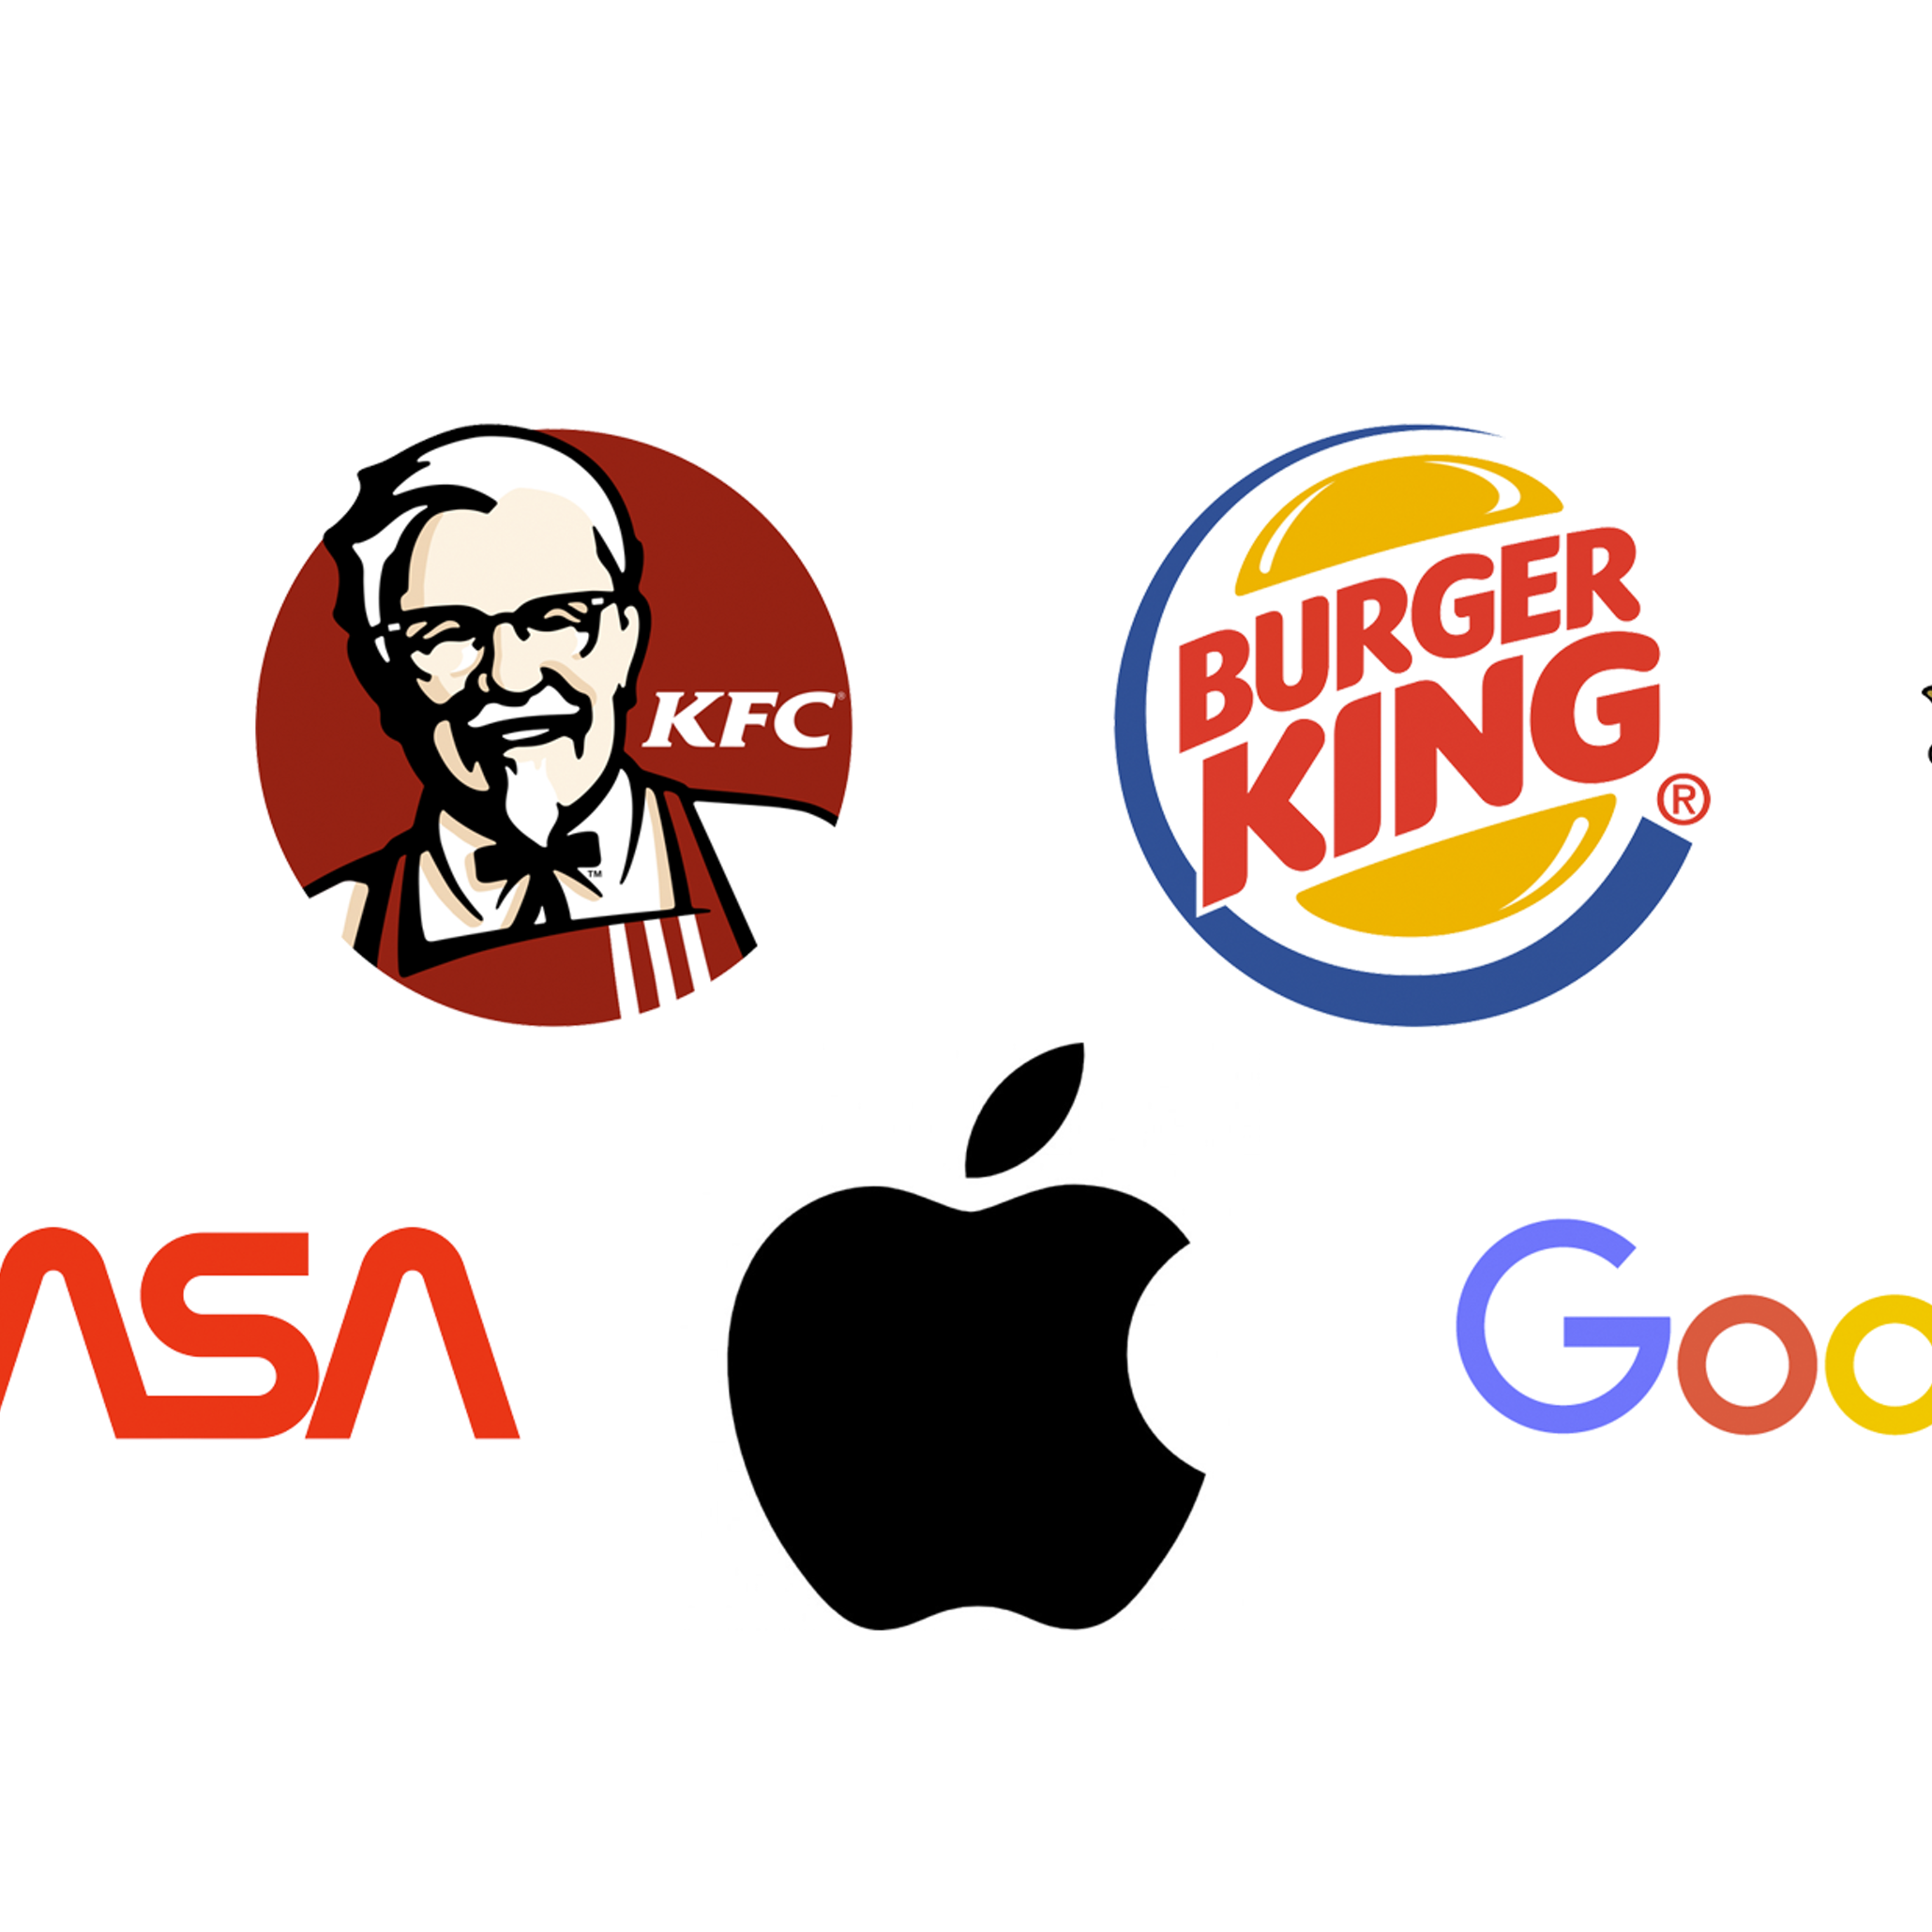 bd695a6e6d673 The 7 types of logos (and how to use them) - 99designs